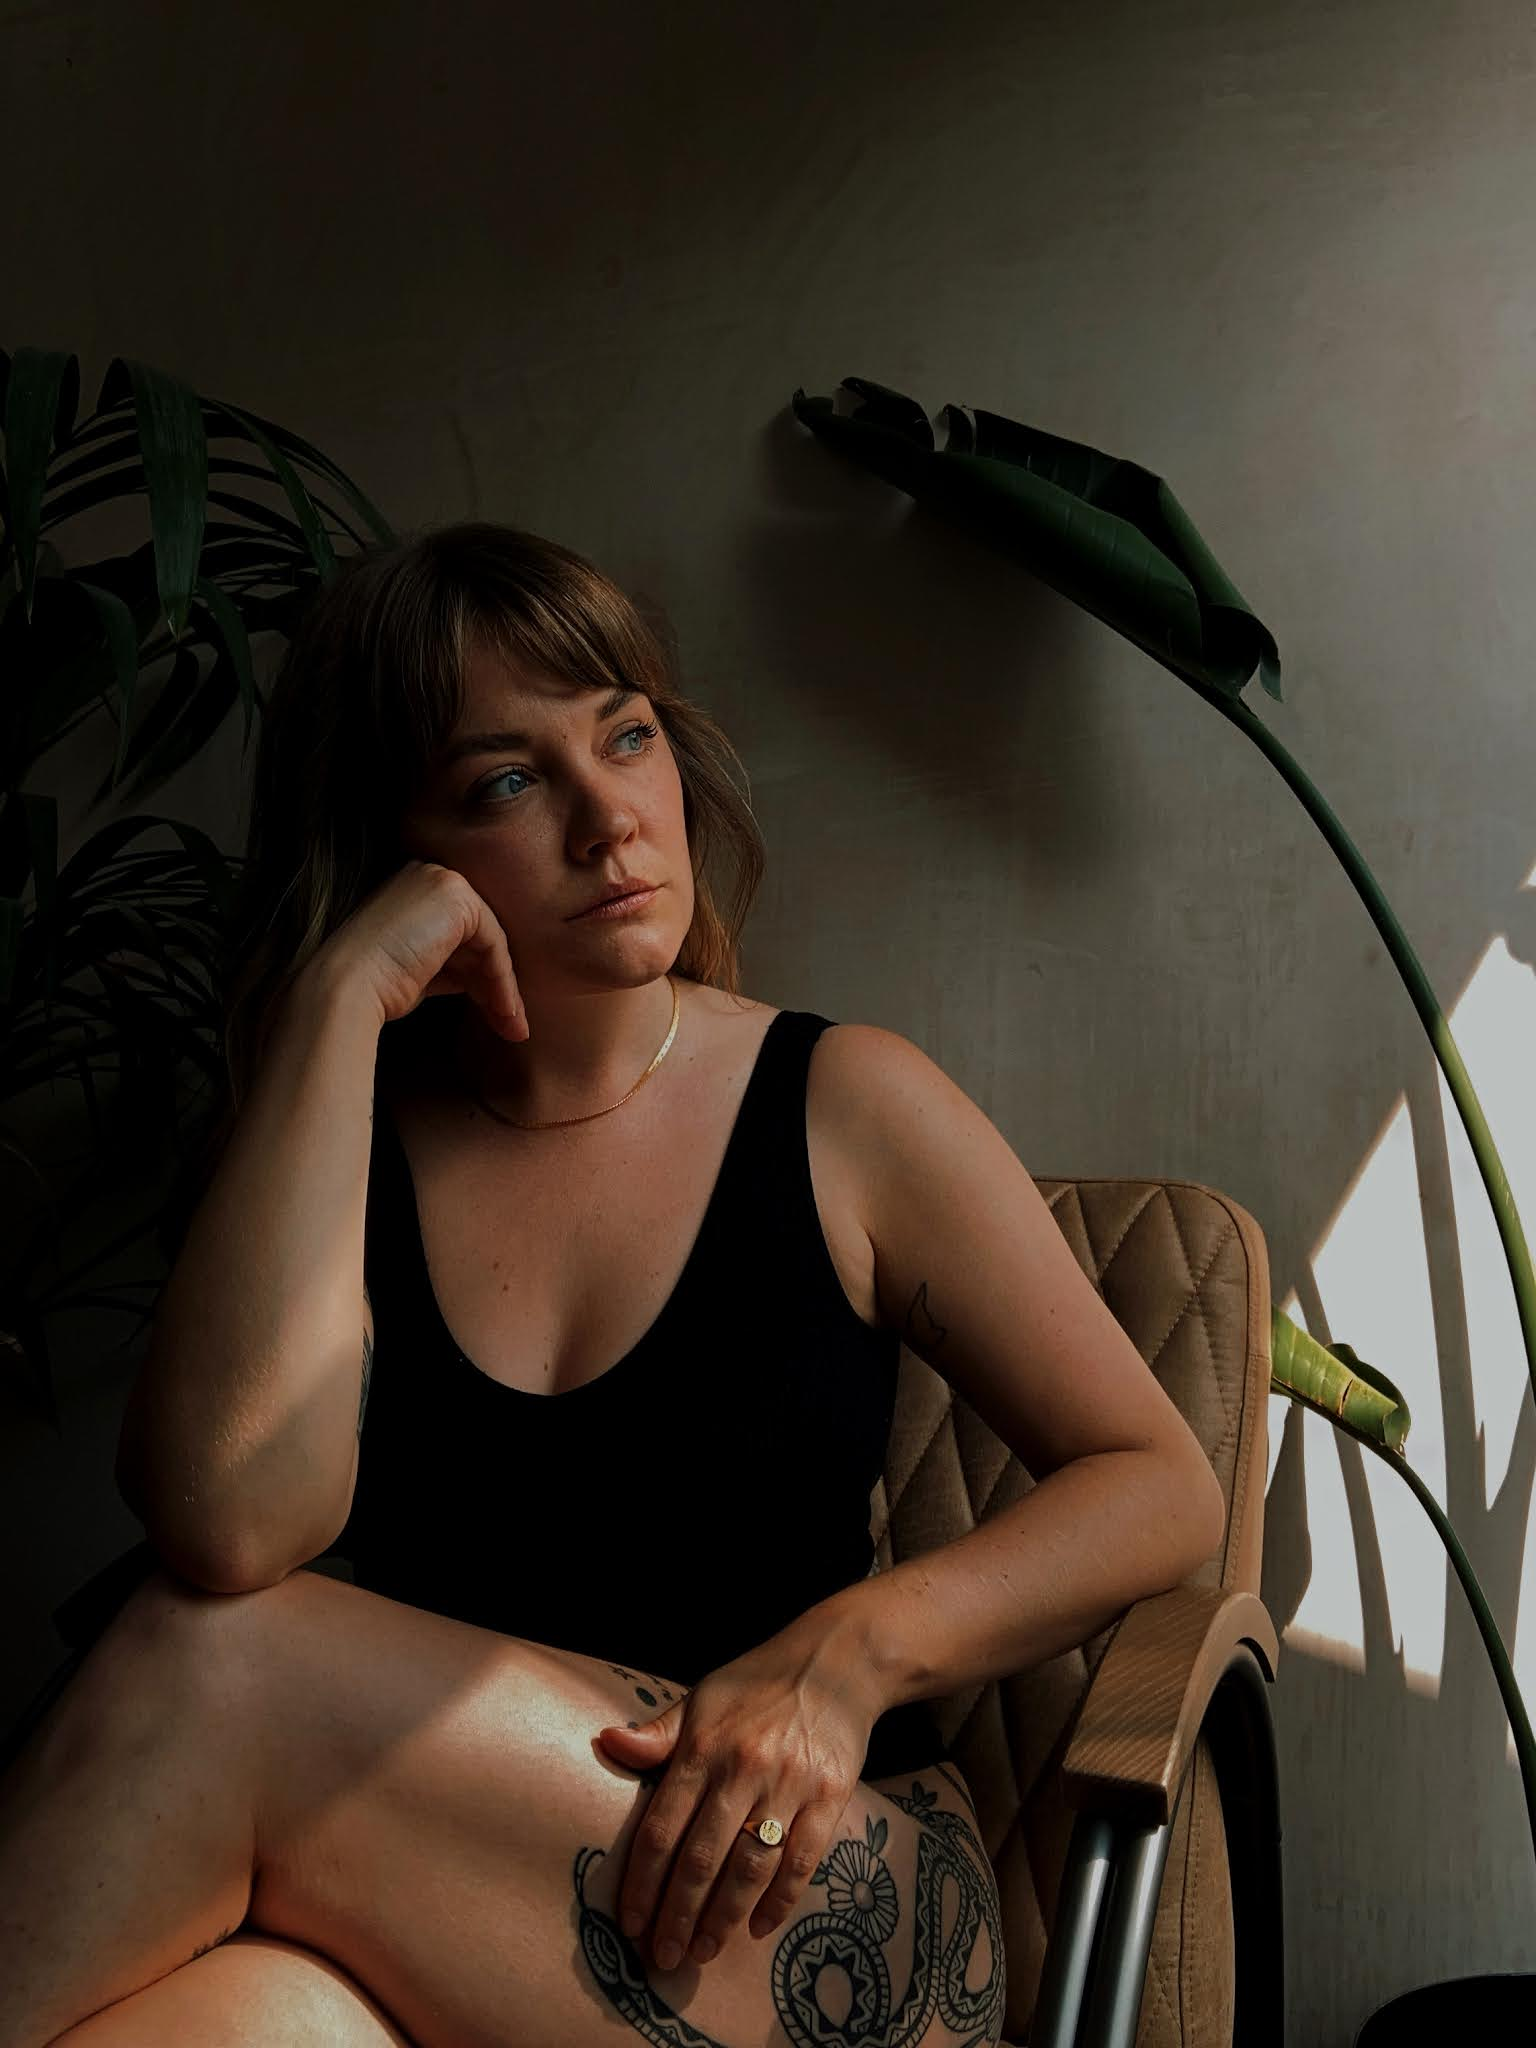 Lyzi sitting on a vintage chair in front of a plaster wall and large plants. Wearing simple black underwear and a Daisy x Estee Lalonde snake chain and forget me not signet ring.